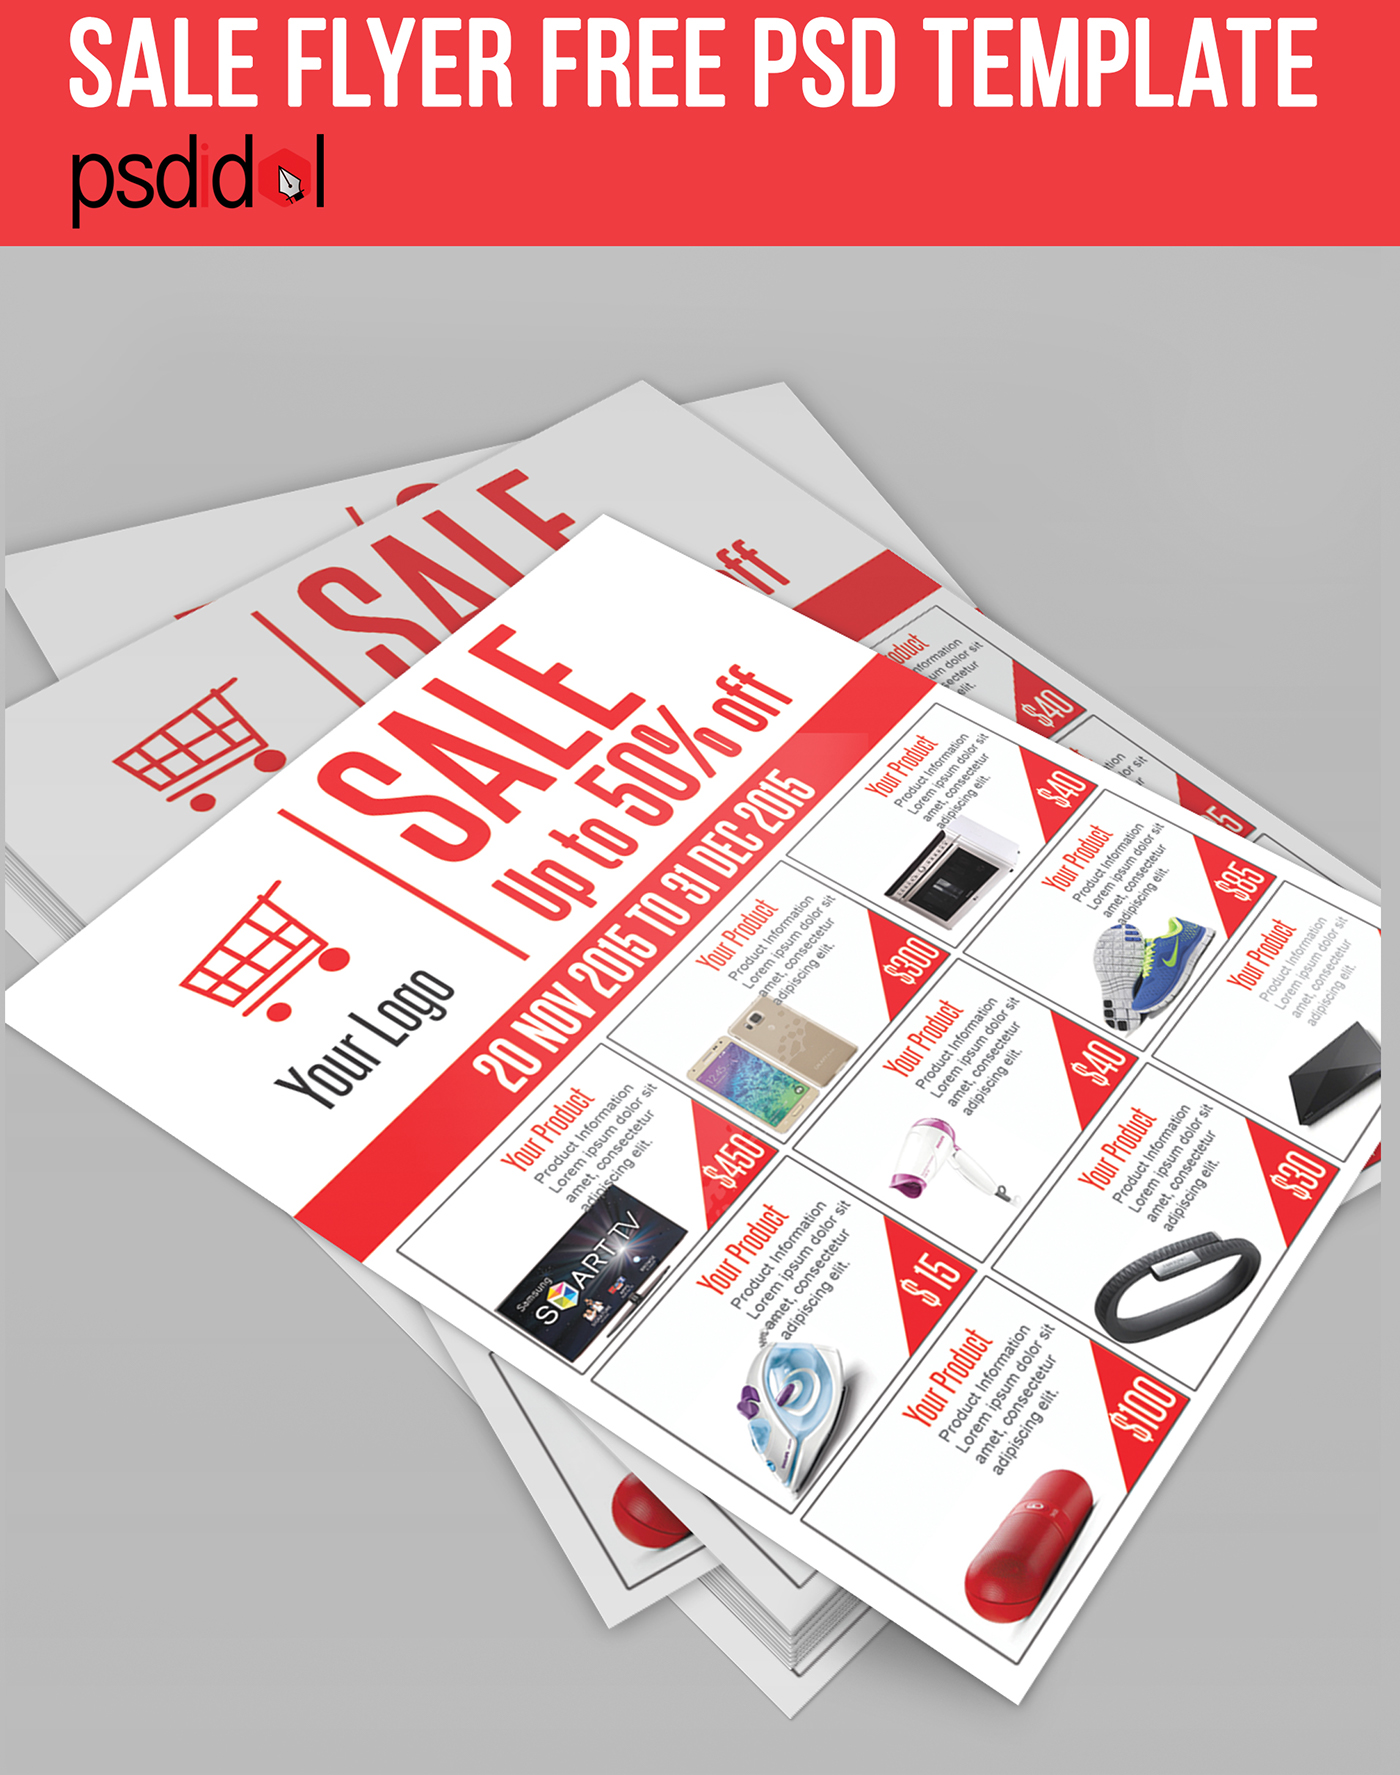 sale flyer free psd template download on behance. Black Bedroom Furniture Sets. Home Design Ideas